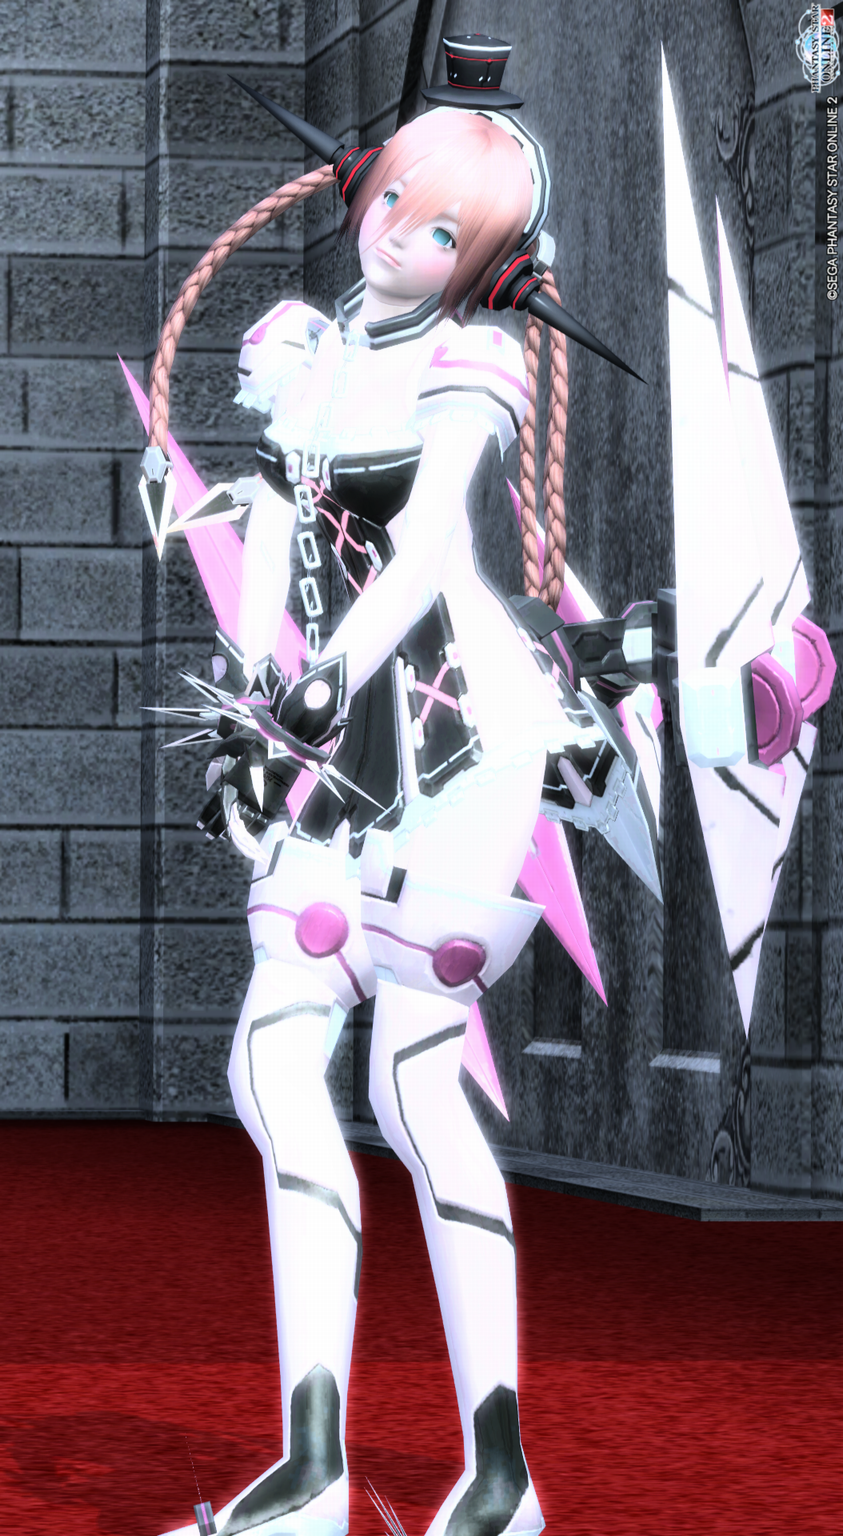 pso20150318_100328_144.png